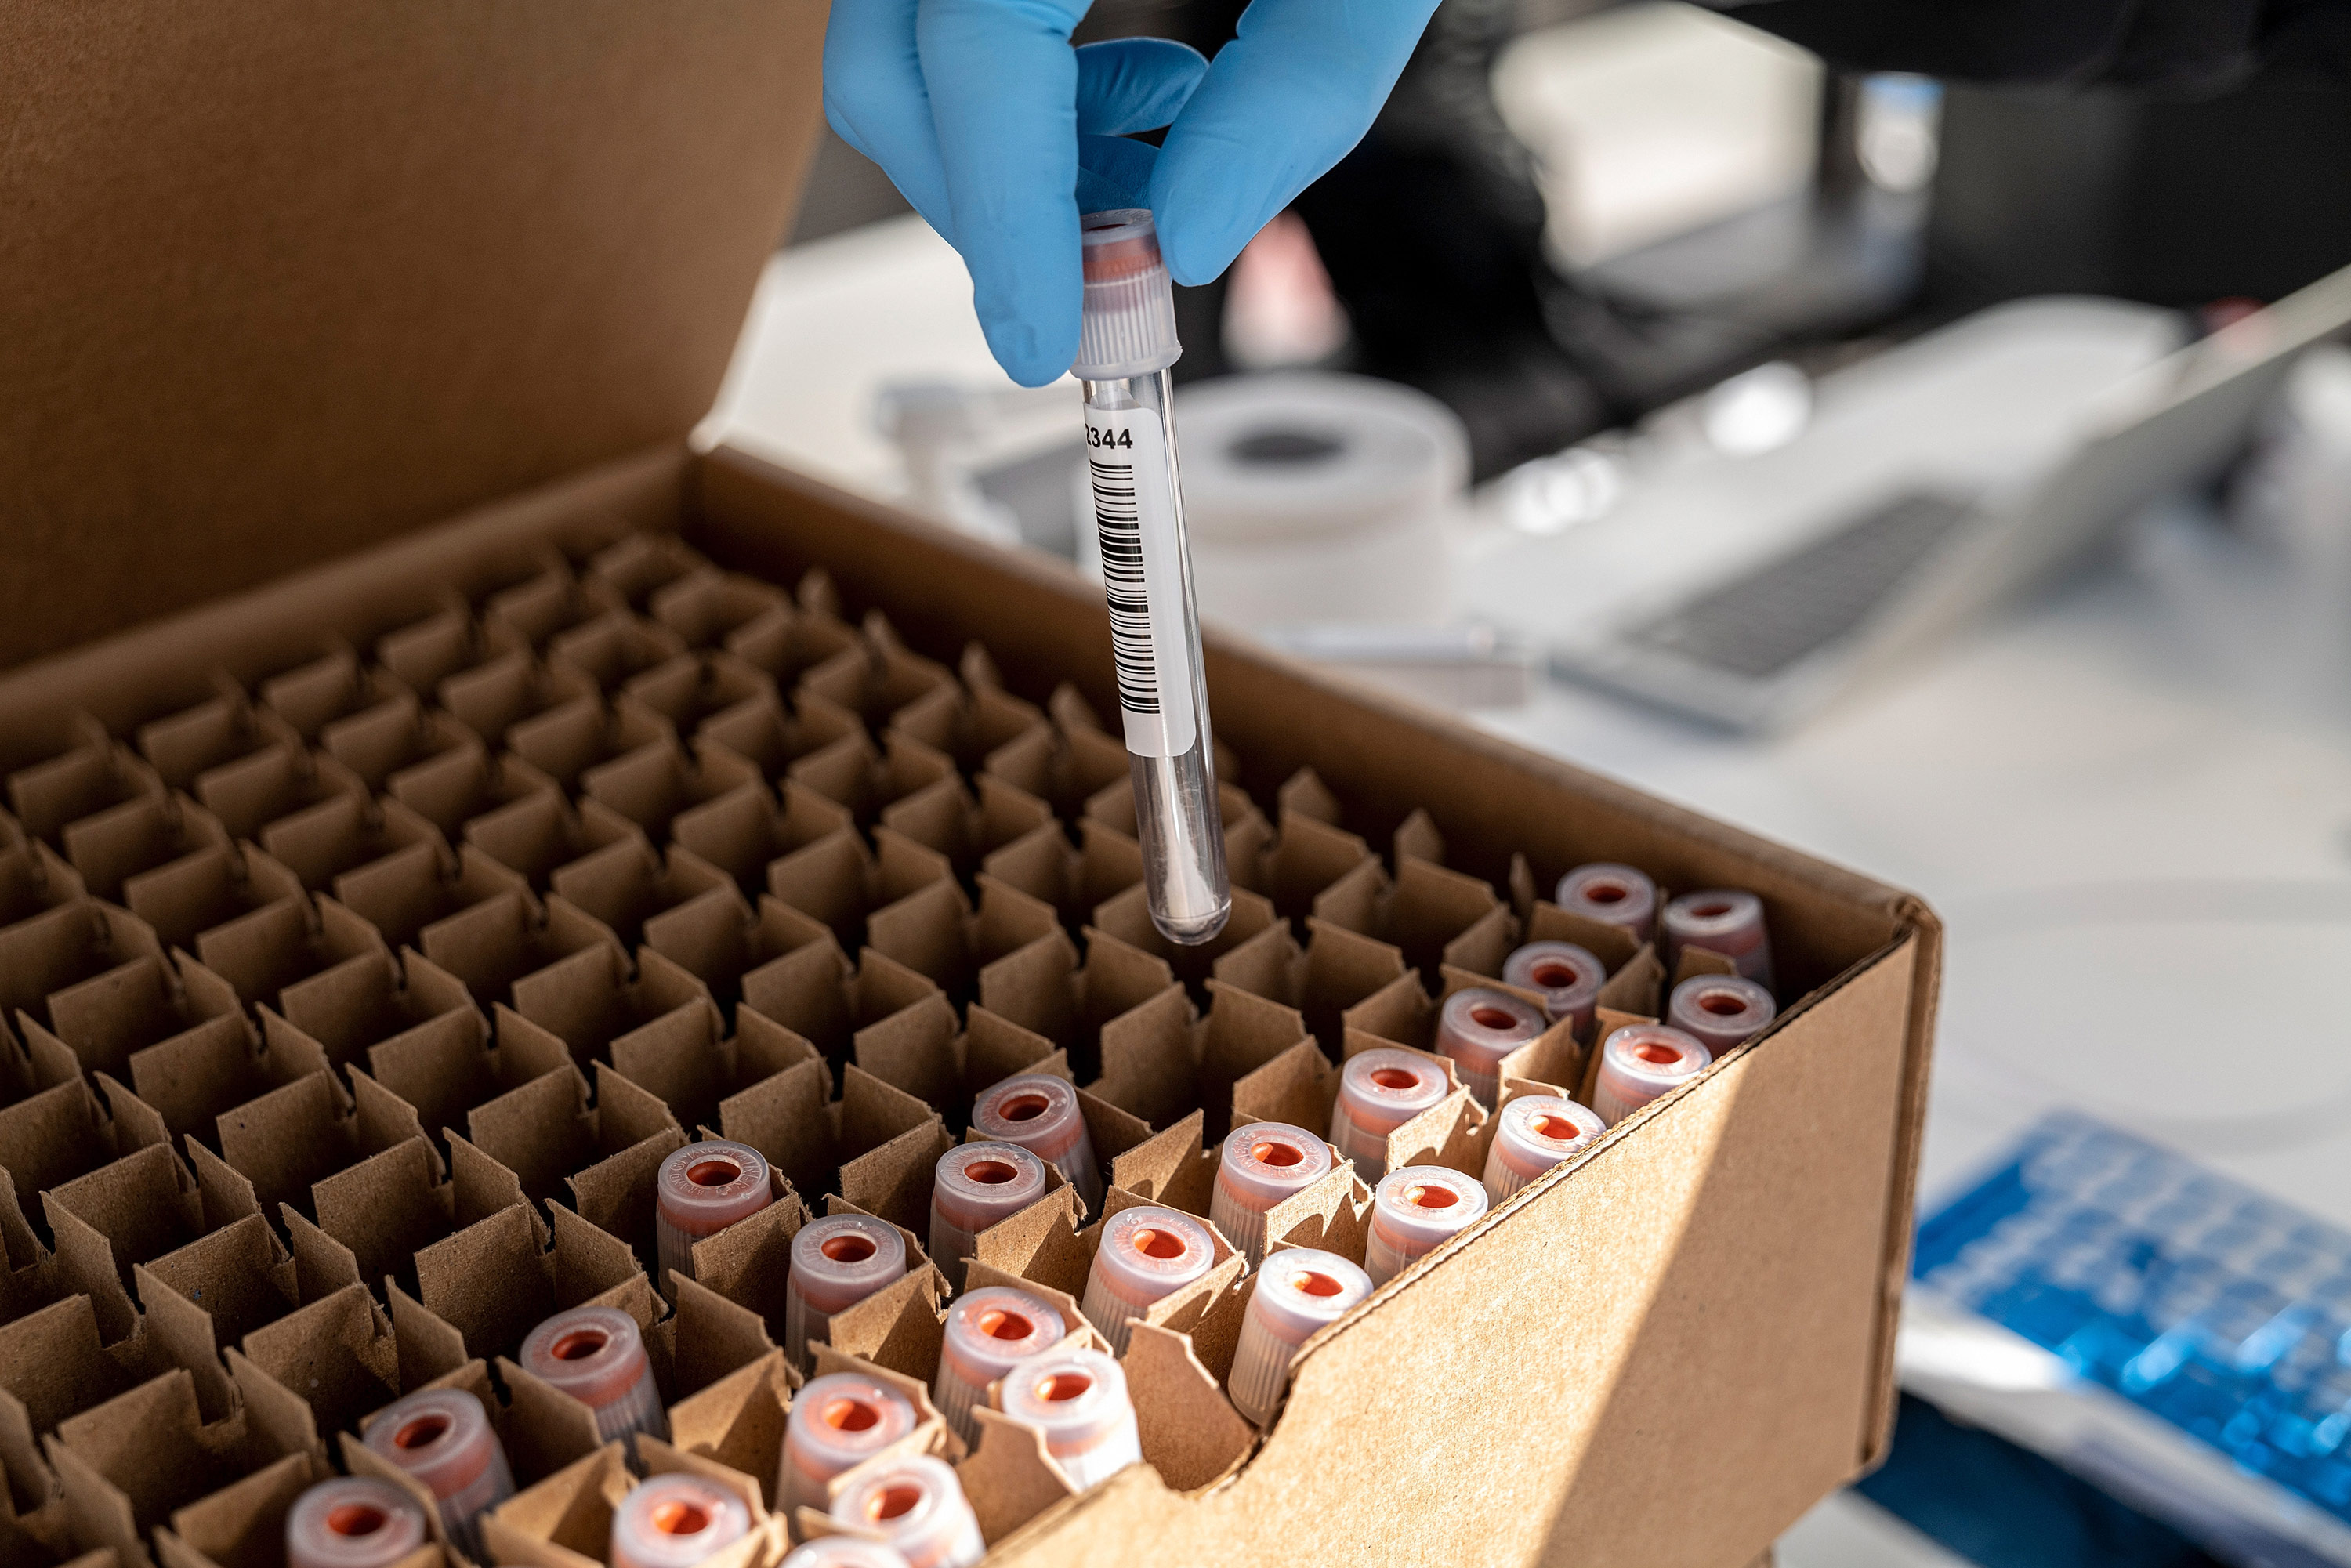 A health care worker places a vial containing a Covid-19 test swab into a box at a testing site in San Francisco, California, on January 9.